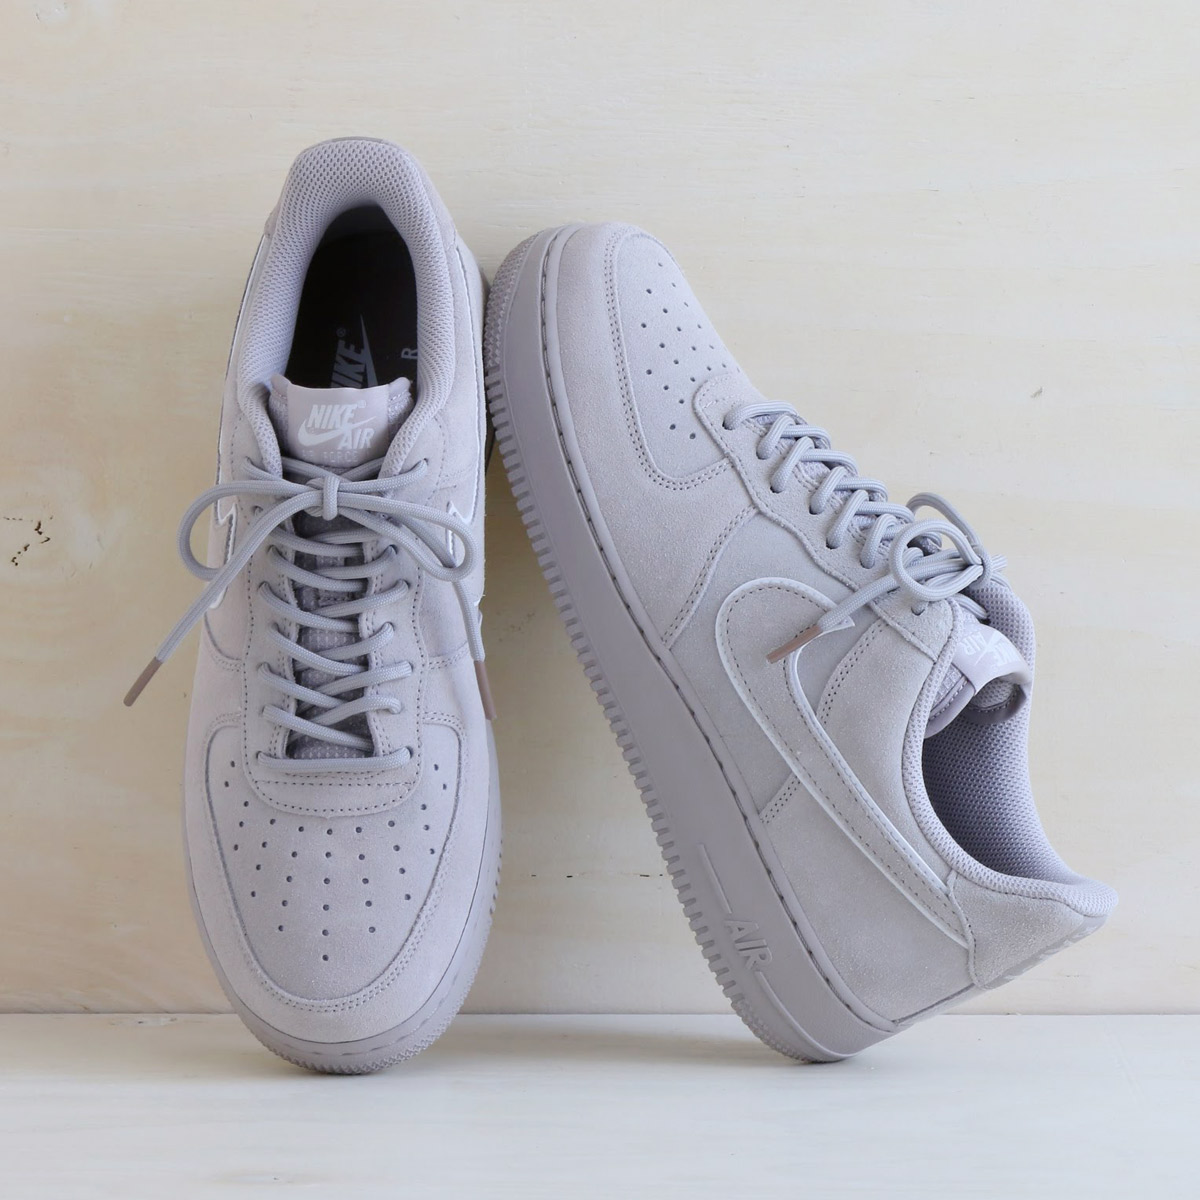 Nike Air Force 1 '07 LV8 Suede Moon Particle/ Moon Particle qJTi2TUjr